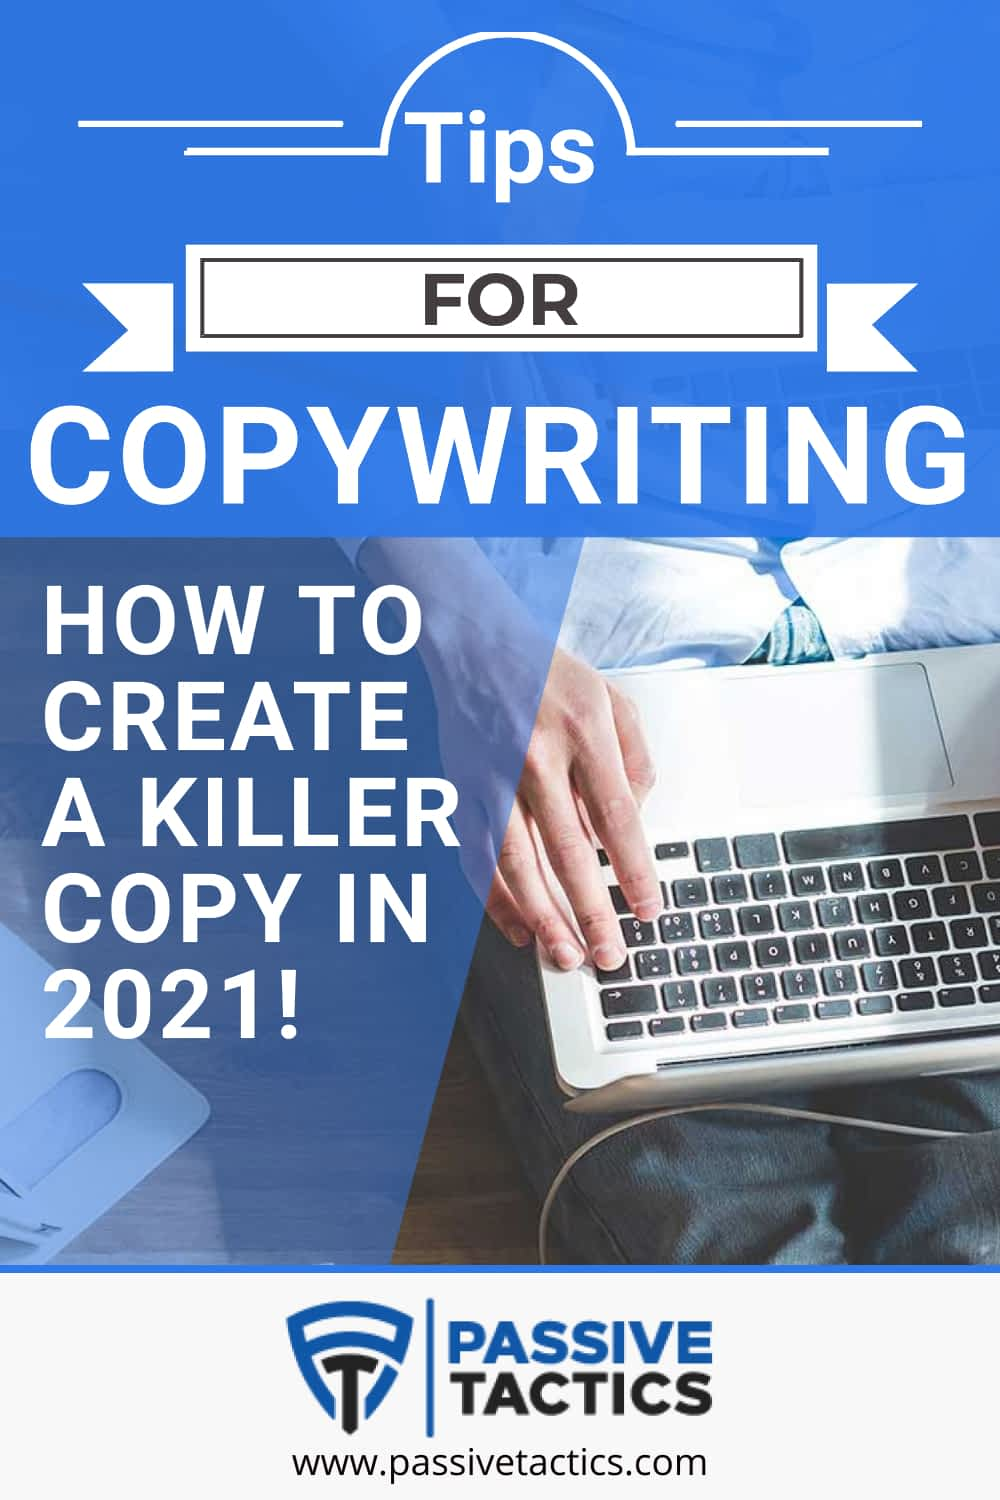 7 Tips For Copywriting To Create A Killer Copy In 2021!